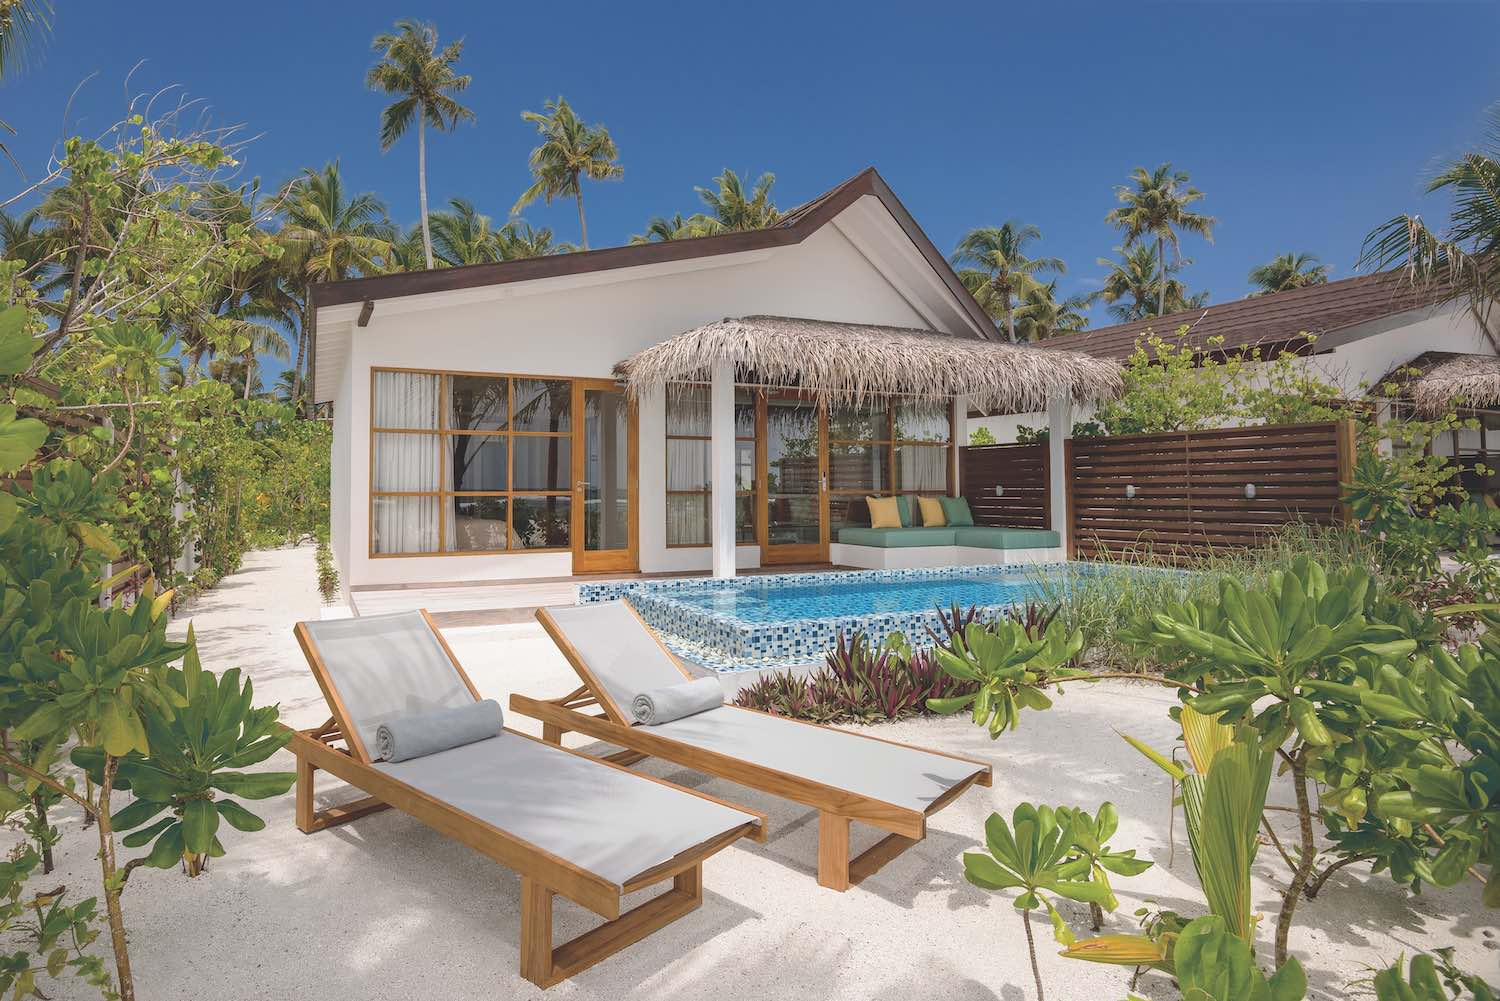 maldives-oblu-select-at-sangeli-beach-family-suites-with-pool-holiday-honeymoon-vacation-invite-to-paradise.jpg